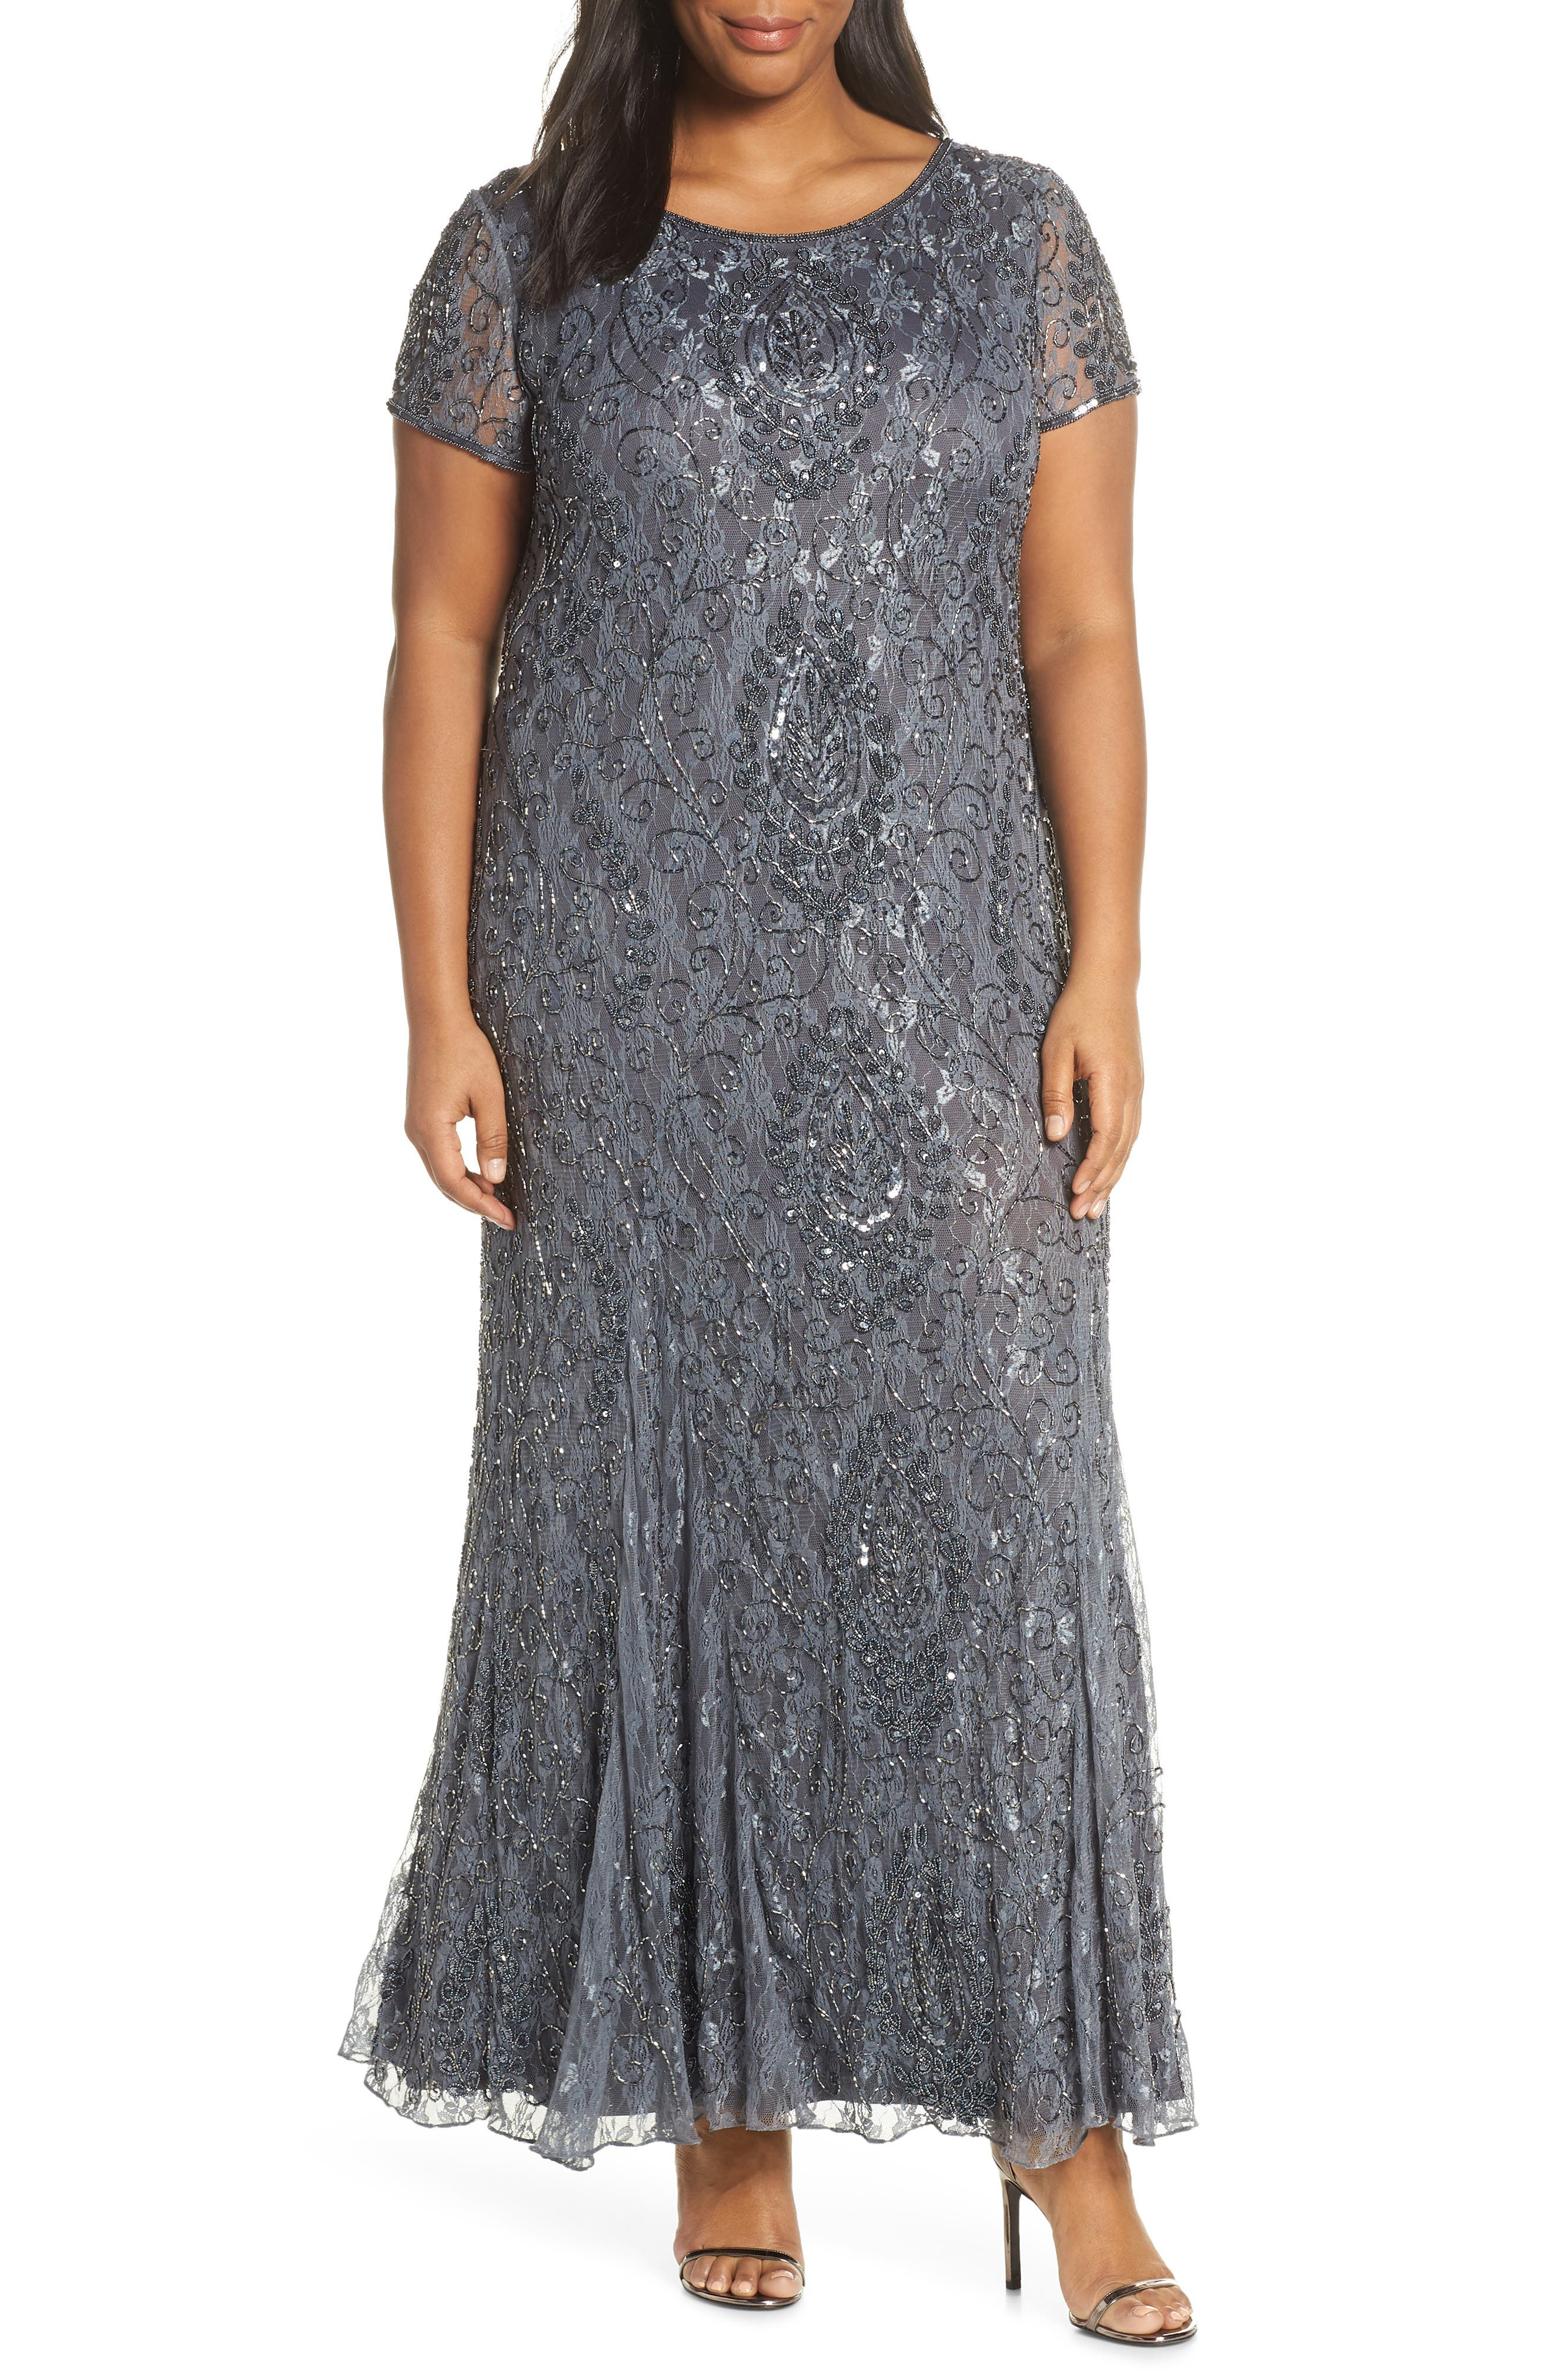 1920s Plus Size Flapper Dresses, Gatsby Dresses, Flapper Costumes Plus Size Womens Pisarro Nights Cap Sleeve Beaded Lace Dress Size 22W - Grey $218.00 AT vintagedancer.com